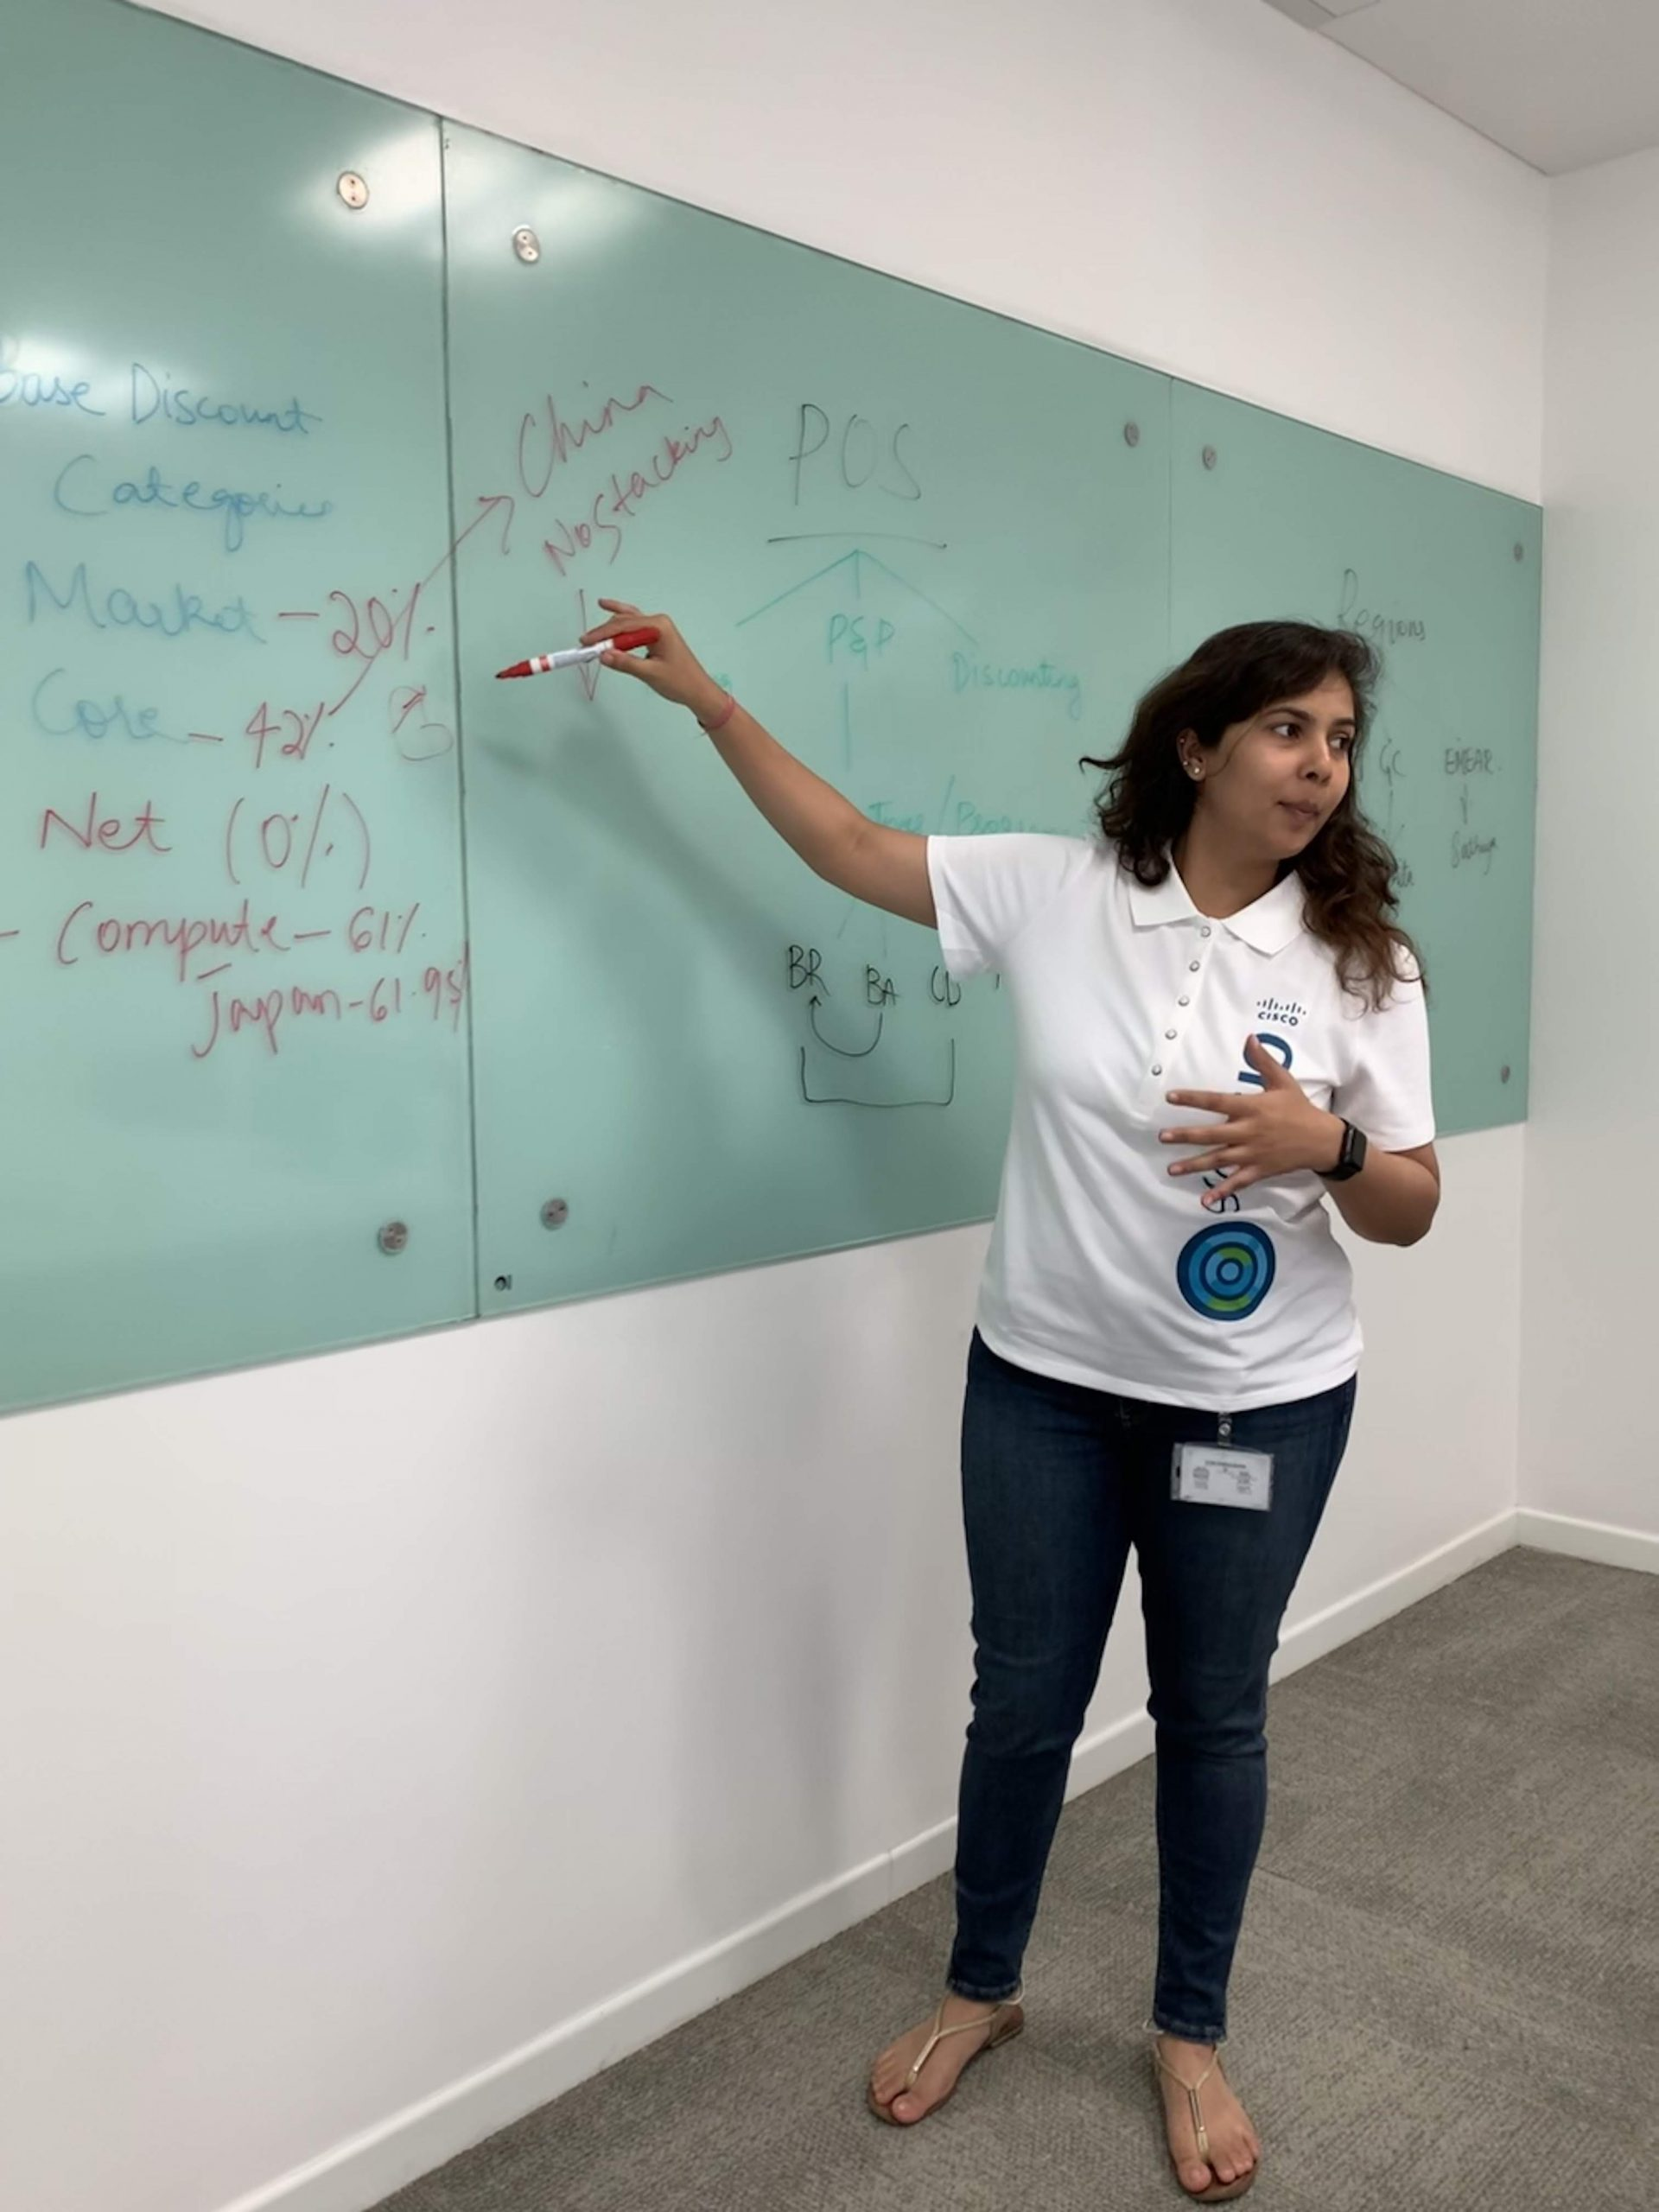 Nikita wears a white Cisco polo and is standing writing on a white board while instructing people watching.